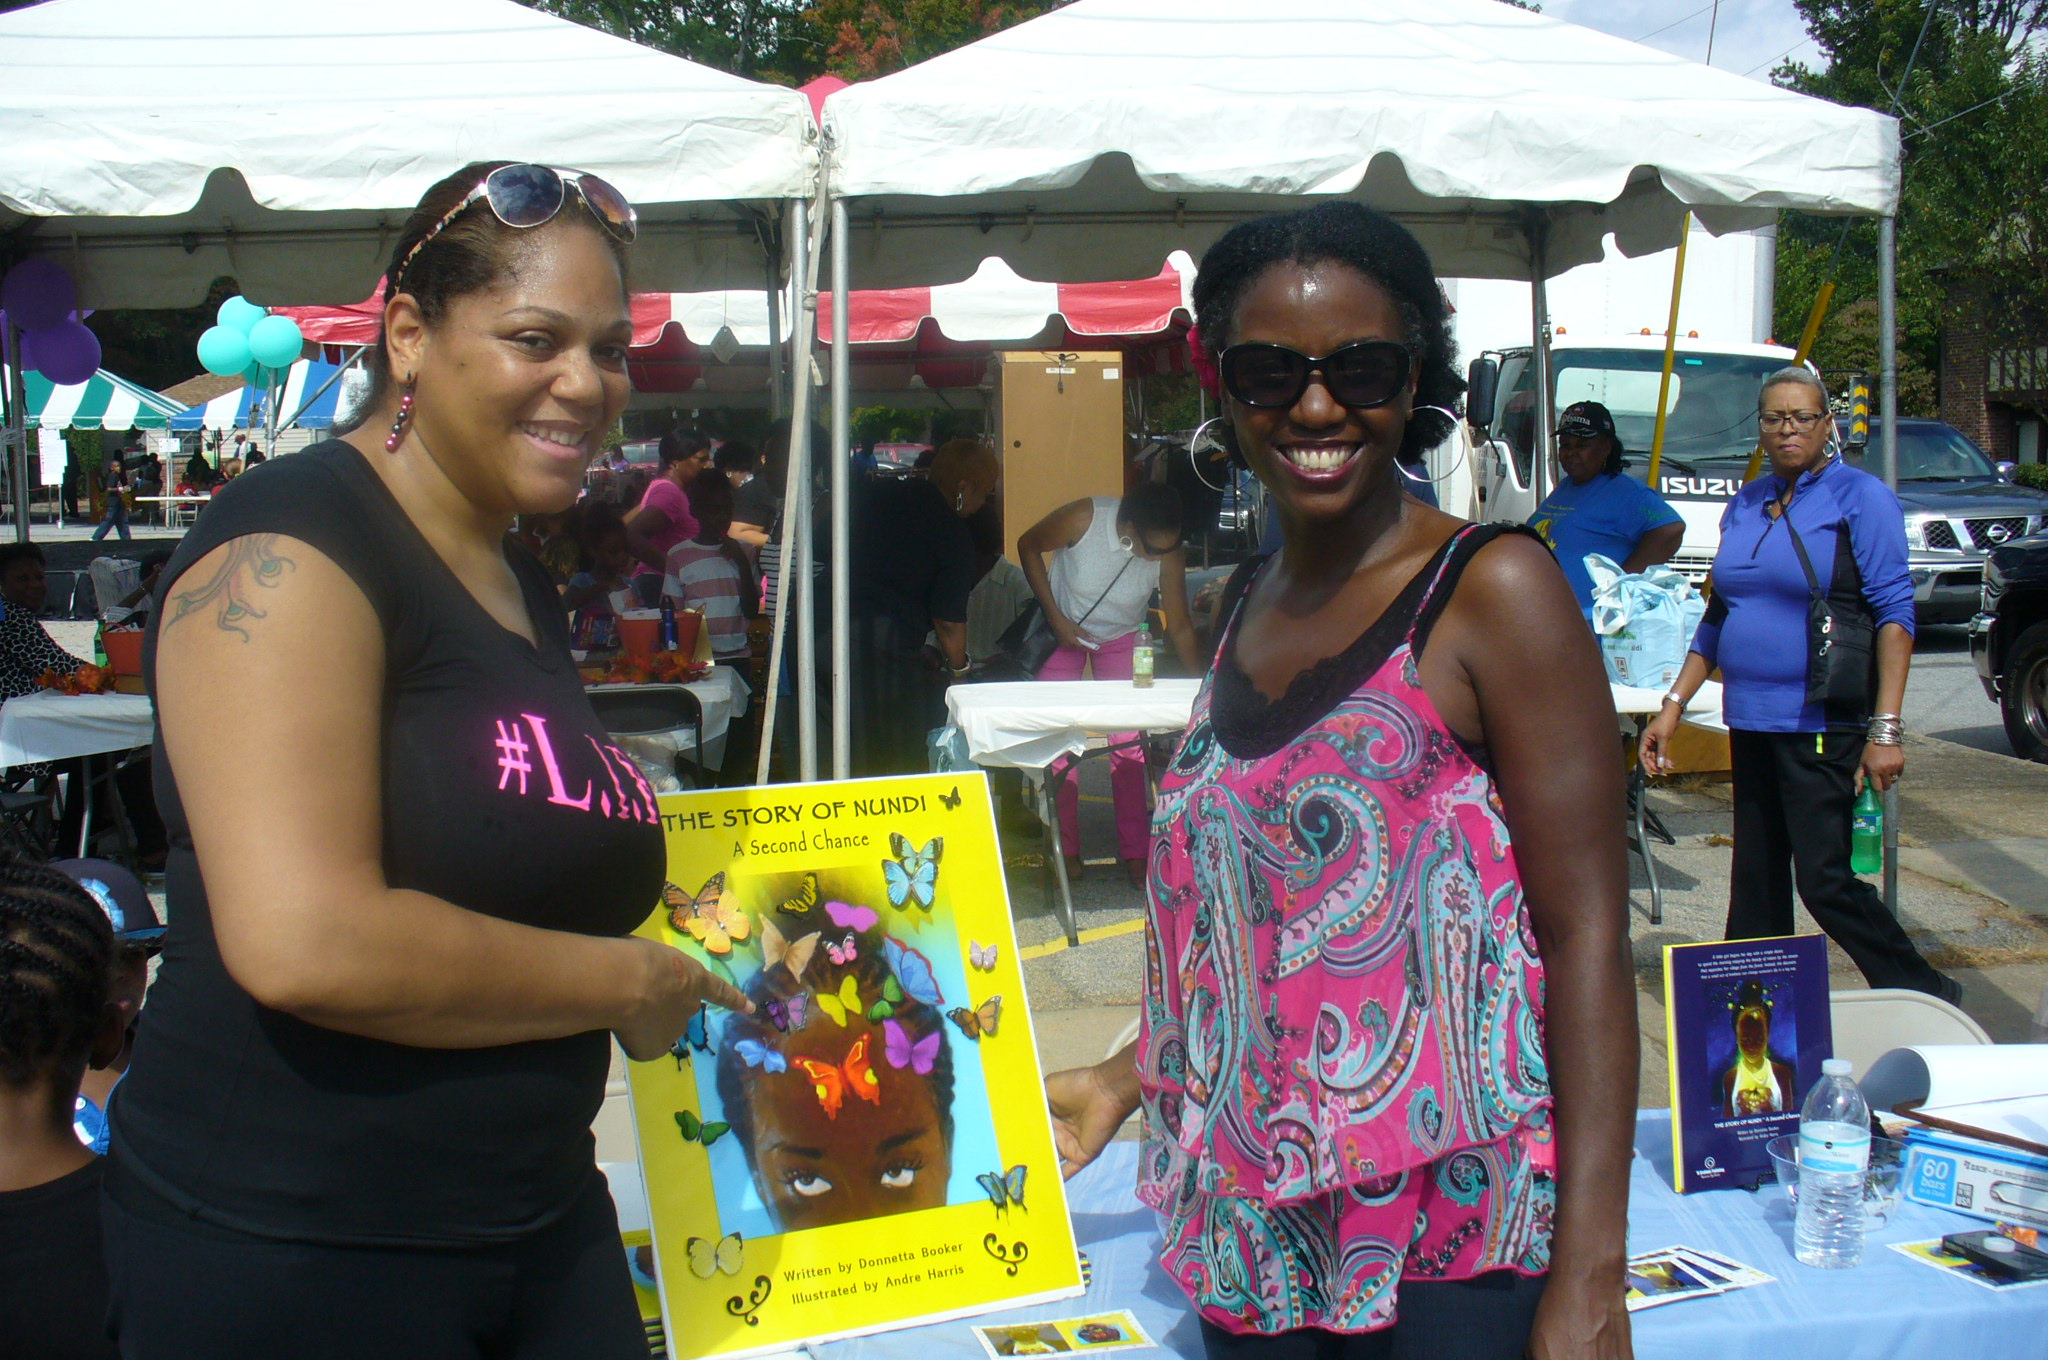 Tiffany of #L.I.F.E. visited my booth. #L.I.F.E. (Ladies In Full Effect) is a Christian based community outreach, enrichment and mentoring program. To learn more visit www.ladiesinfulleffect.org